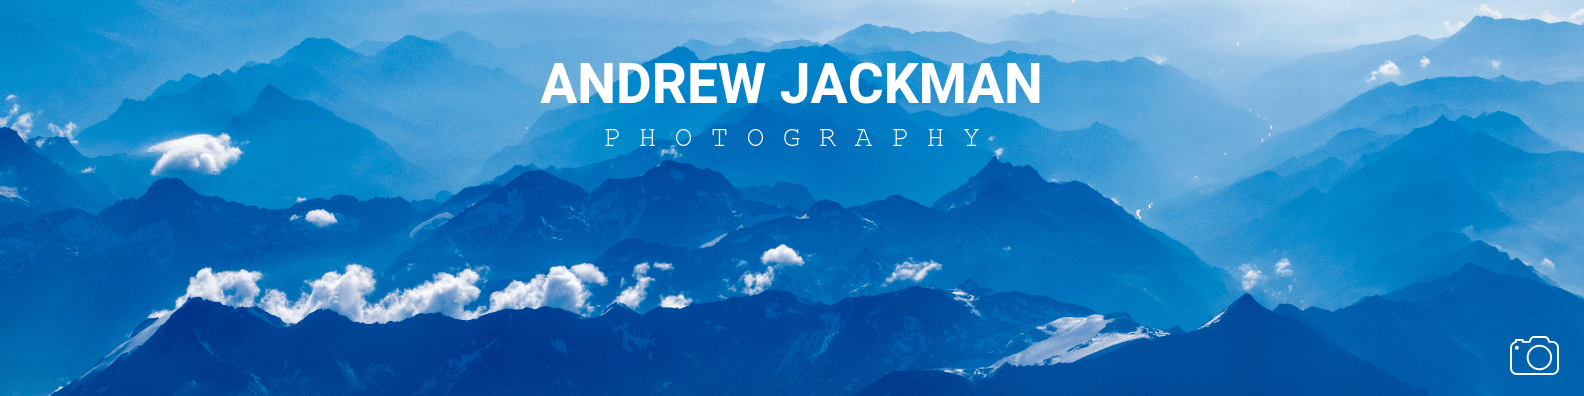 Simple Photography Profile Linkedin Cover Banner Template